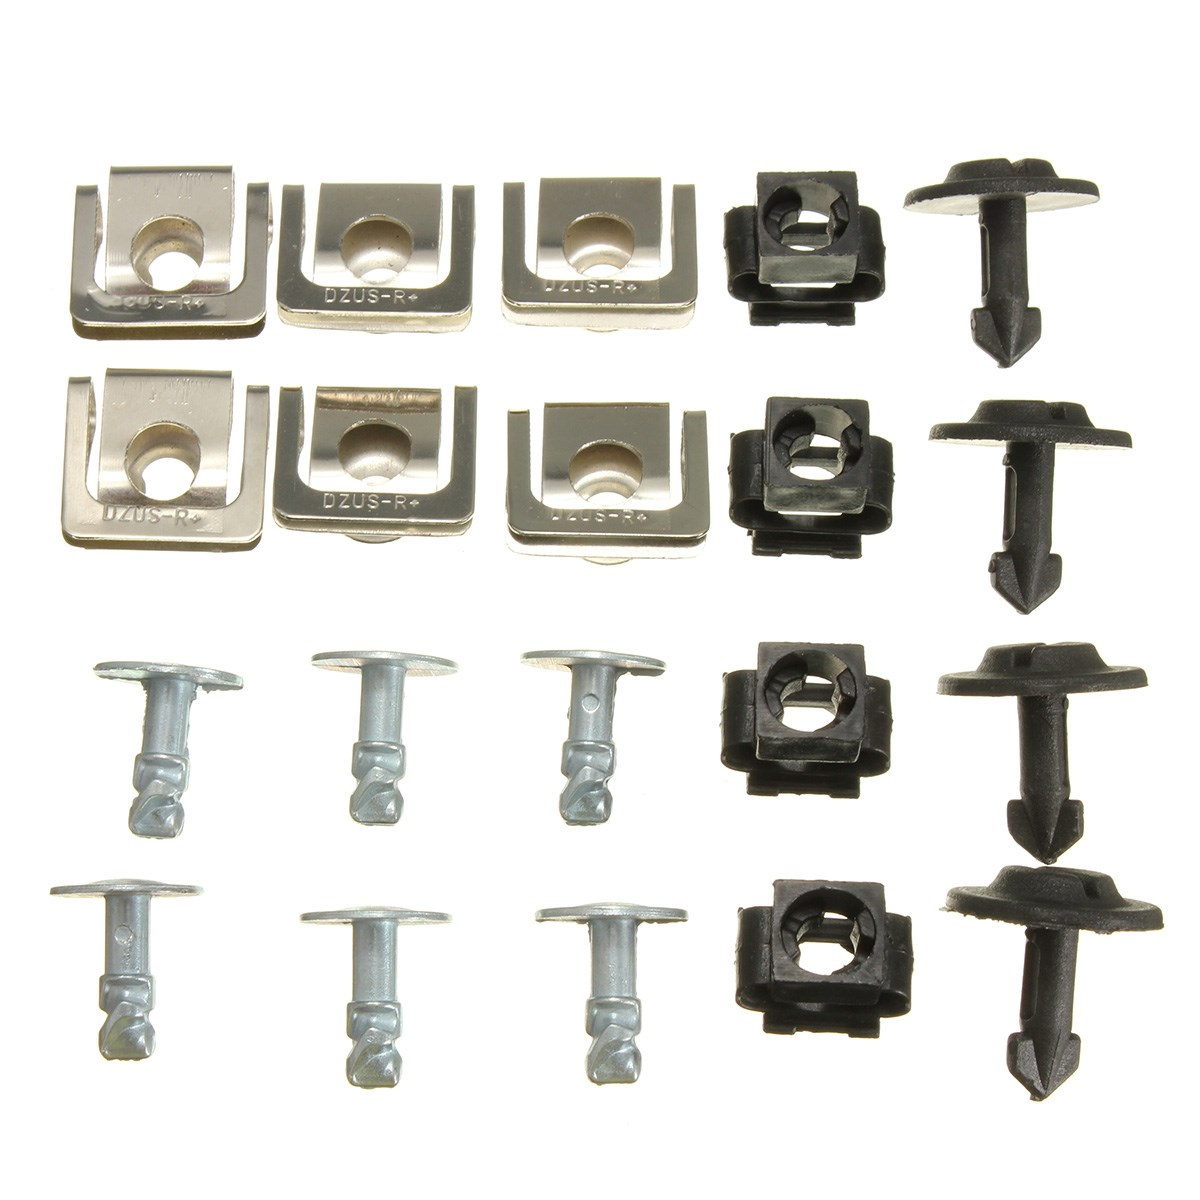 Pcs Set Undertray Guard Engine Under Cover Fixing Clips Screw Kit For Audi A A